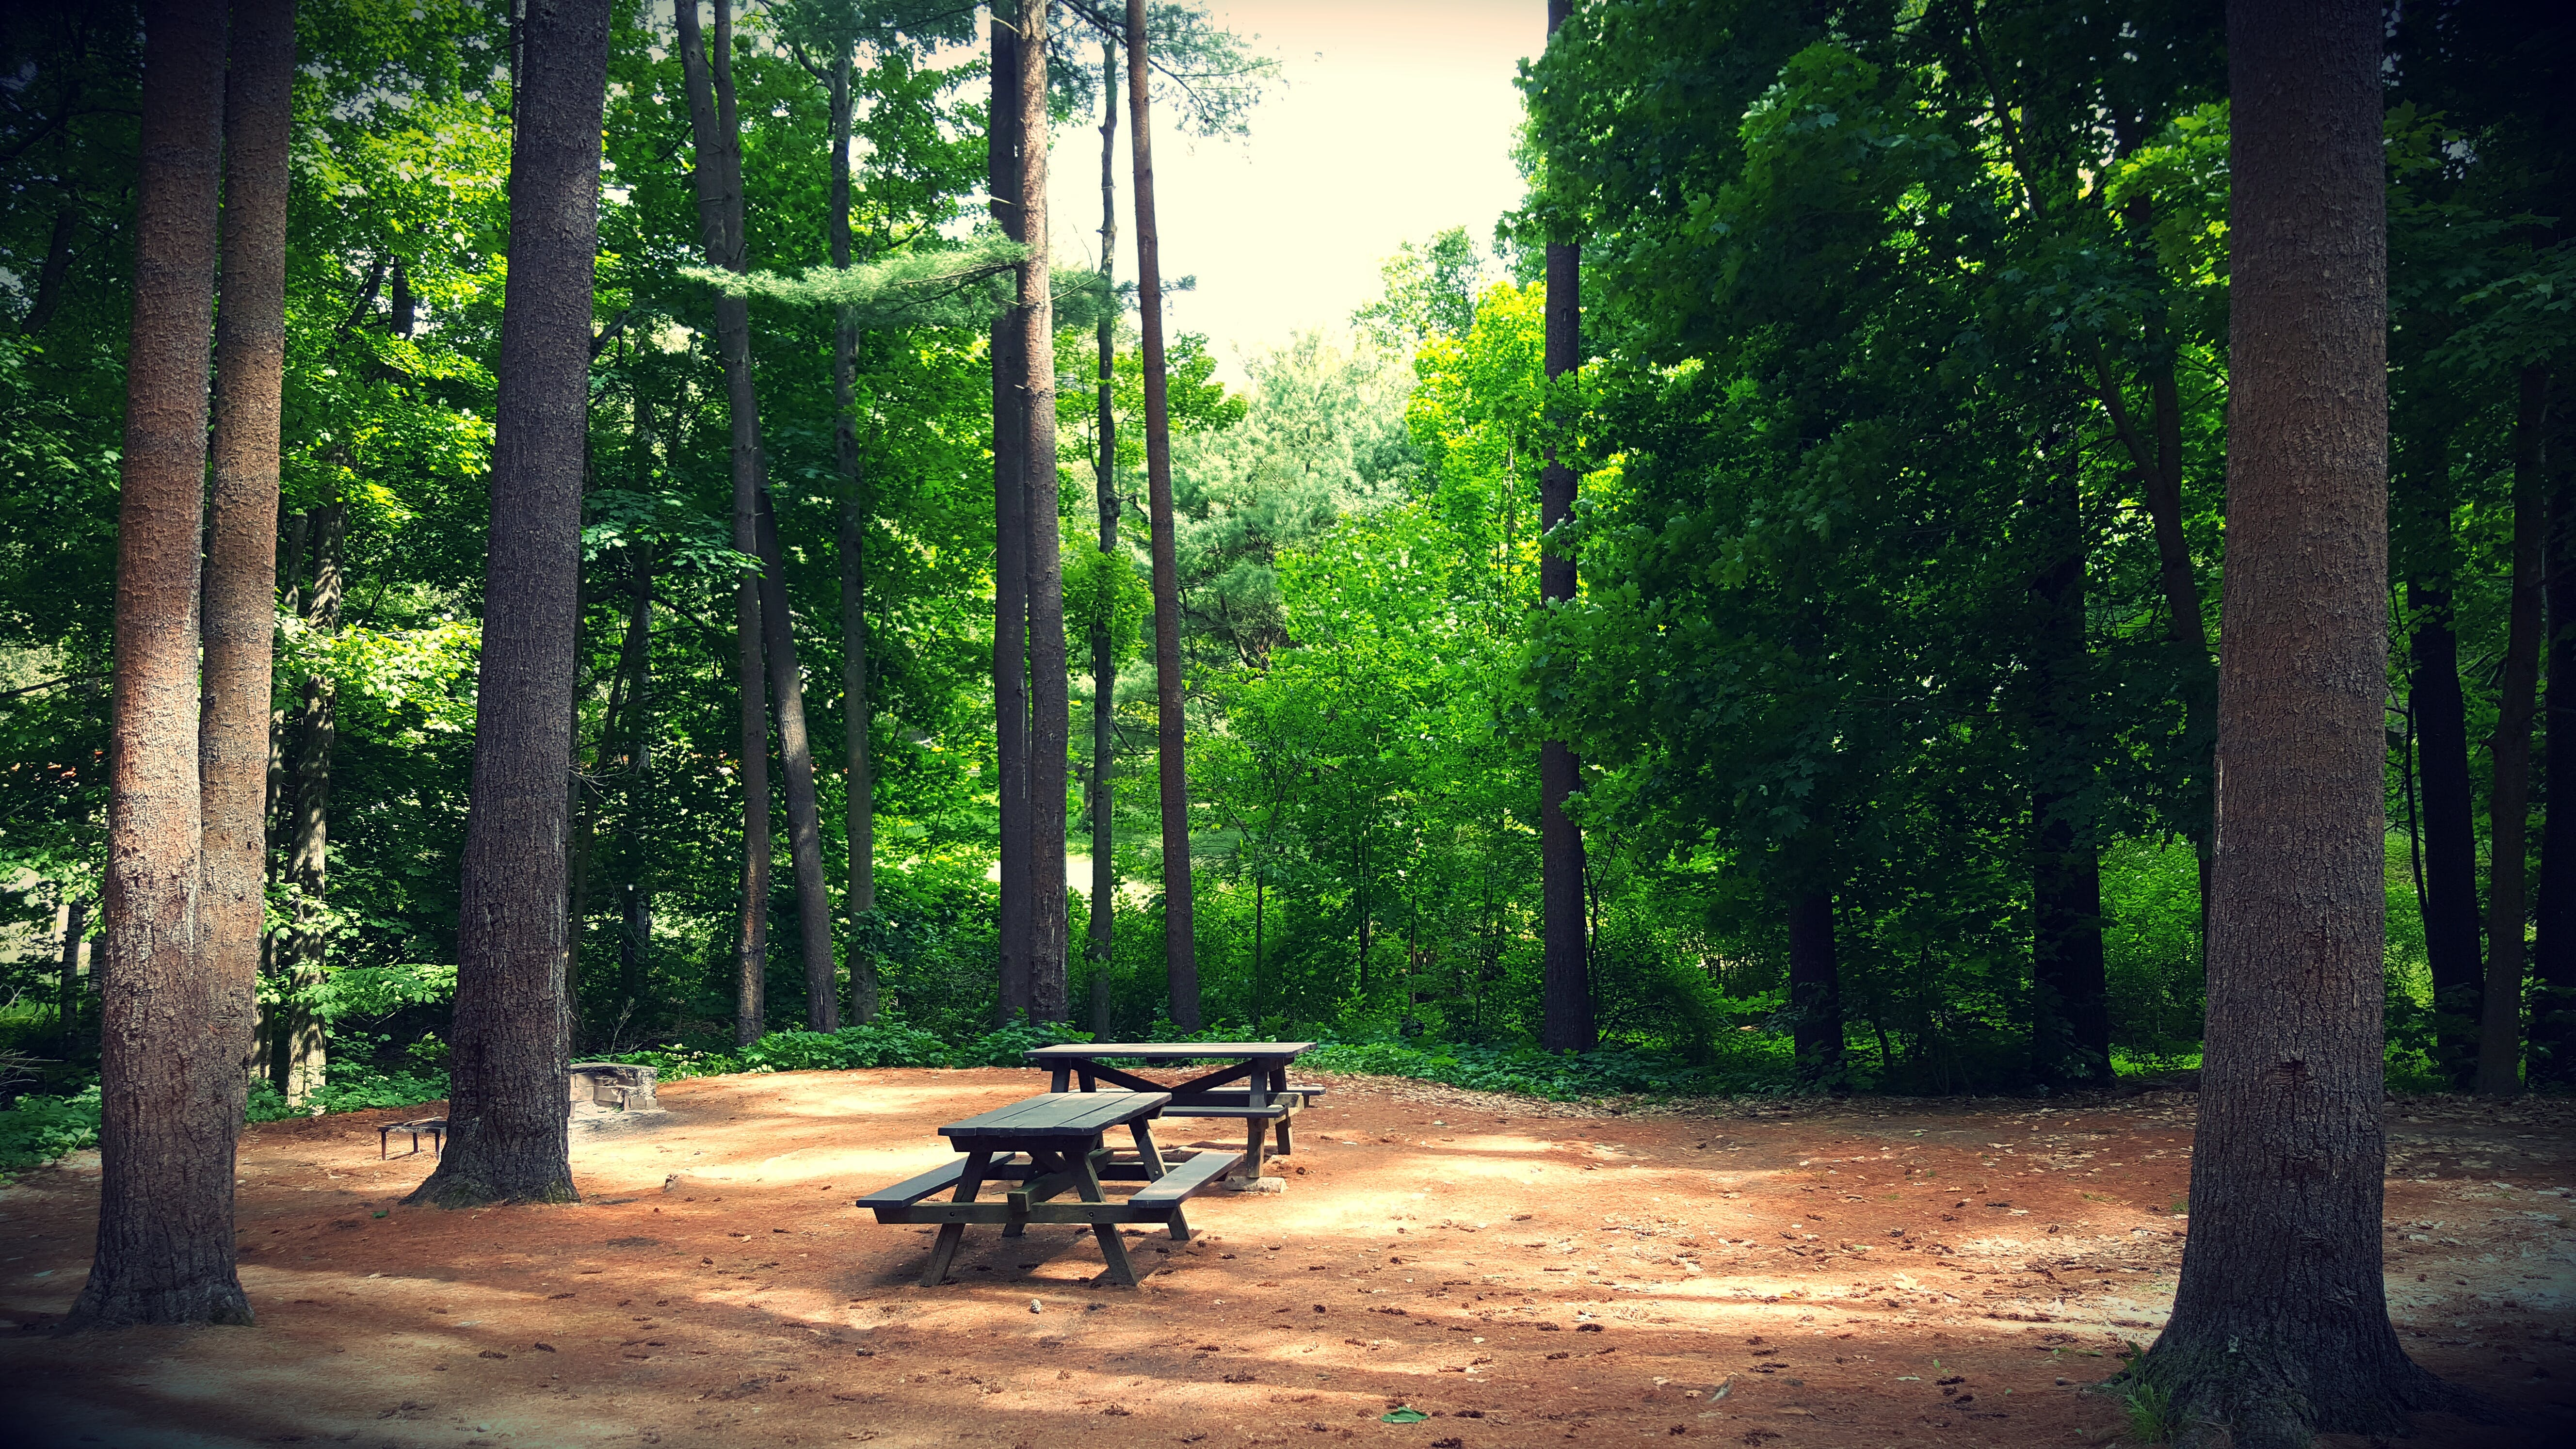 Free stock photo of bench, camping, forest, green